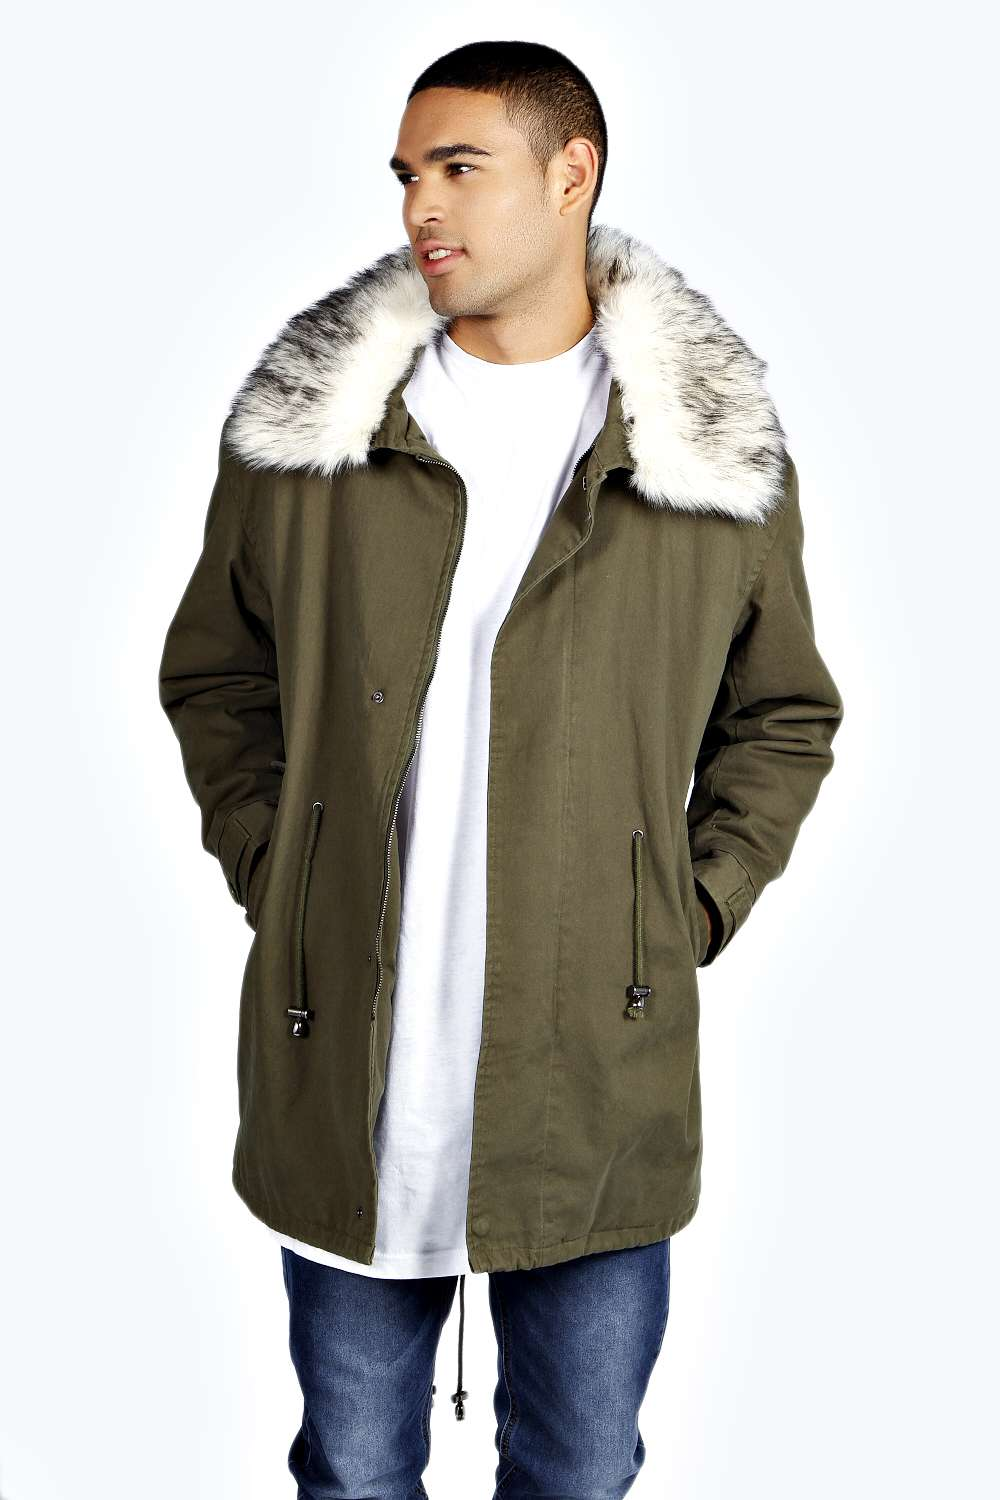 Online shopping for popular & hot Mens Faux Fur Coats from Men's Clothing & Accessories, Faux Leather Coats, Jackets, Women's Clothing & Accessories and more related Mens Faux Fur Coats like Mens Faux Fur Coats. Discover over of the best Selection Mens Faux Fur Coats on specialtysports.ga Besides, various selected Mens Faux Fur Coats brands are prepared for you to .